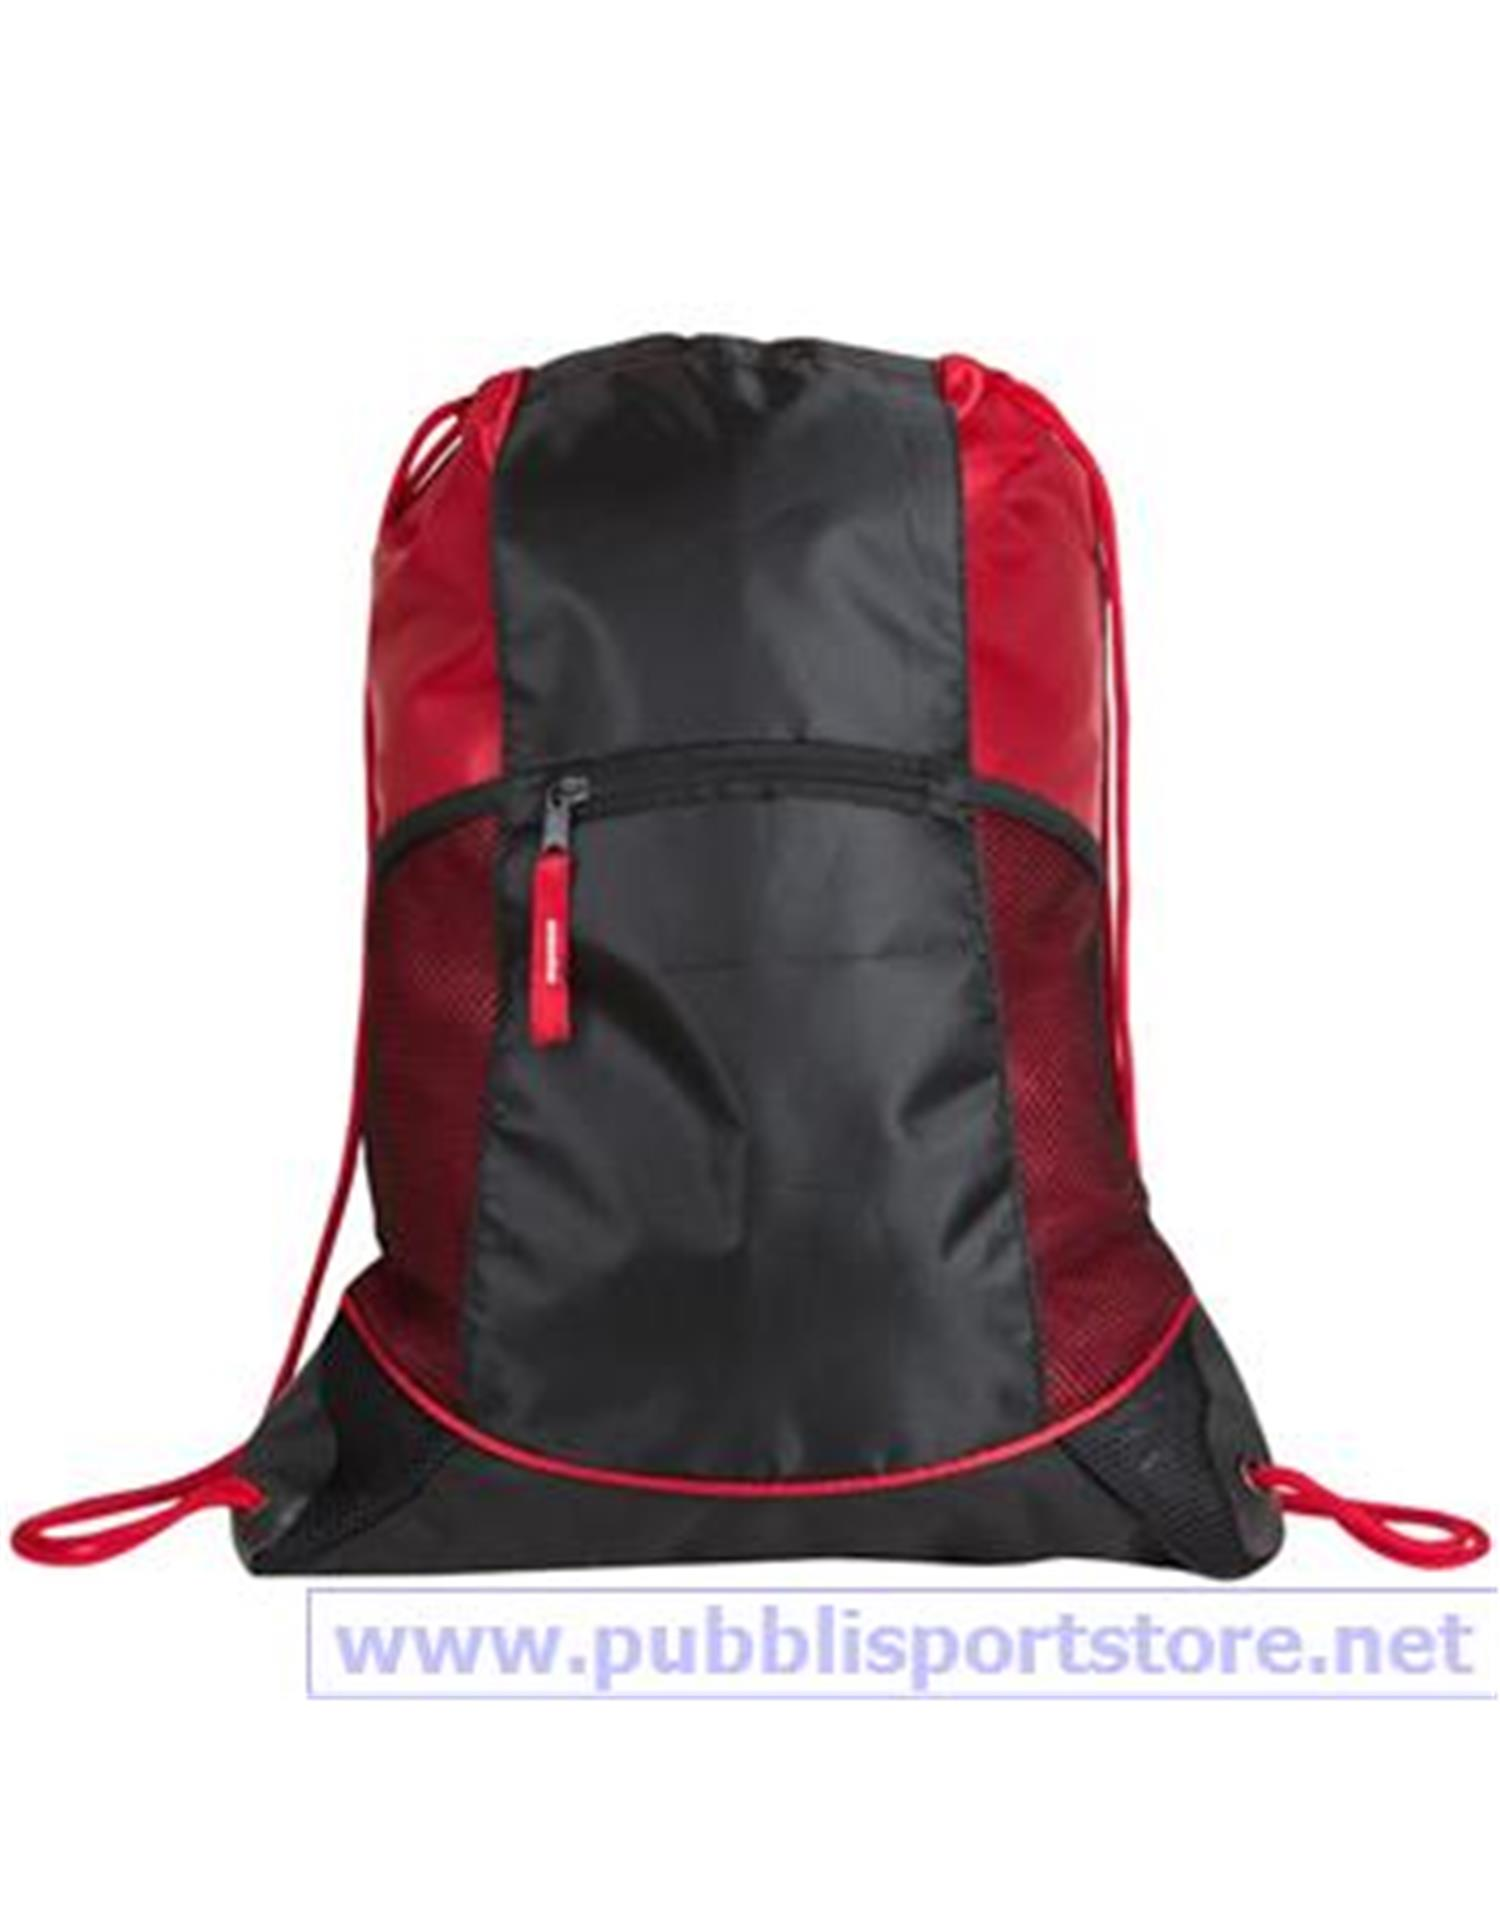 NewWave Zainetto Smart Backpack (48*35.5 CM - ROSSO)